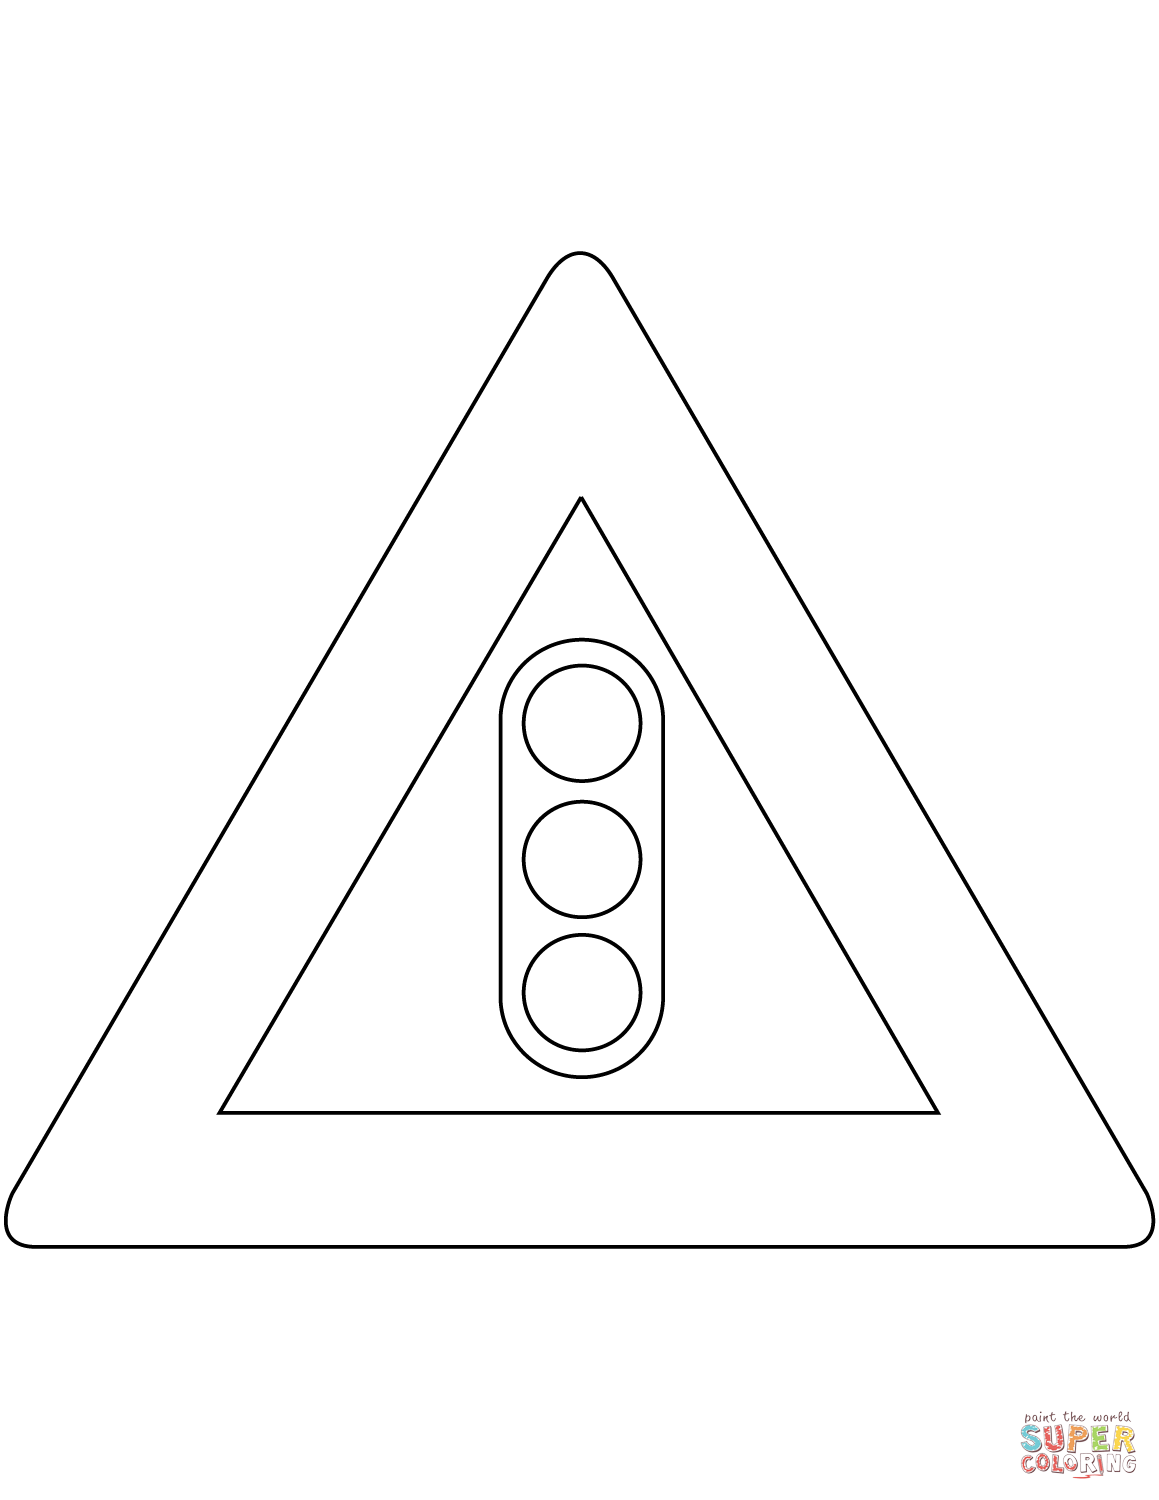 Traffic Lights Sign In The Netherlands Coloring Page